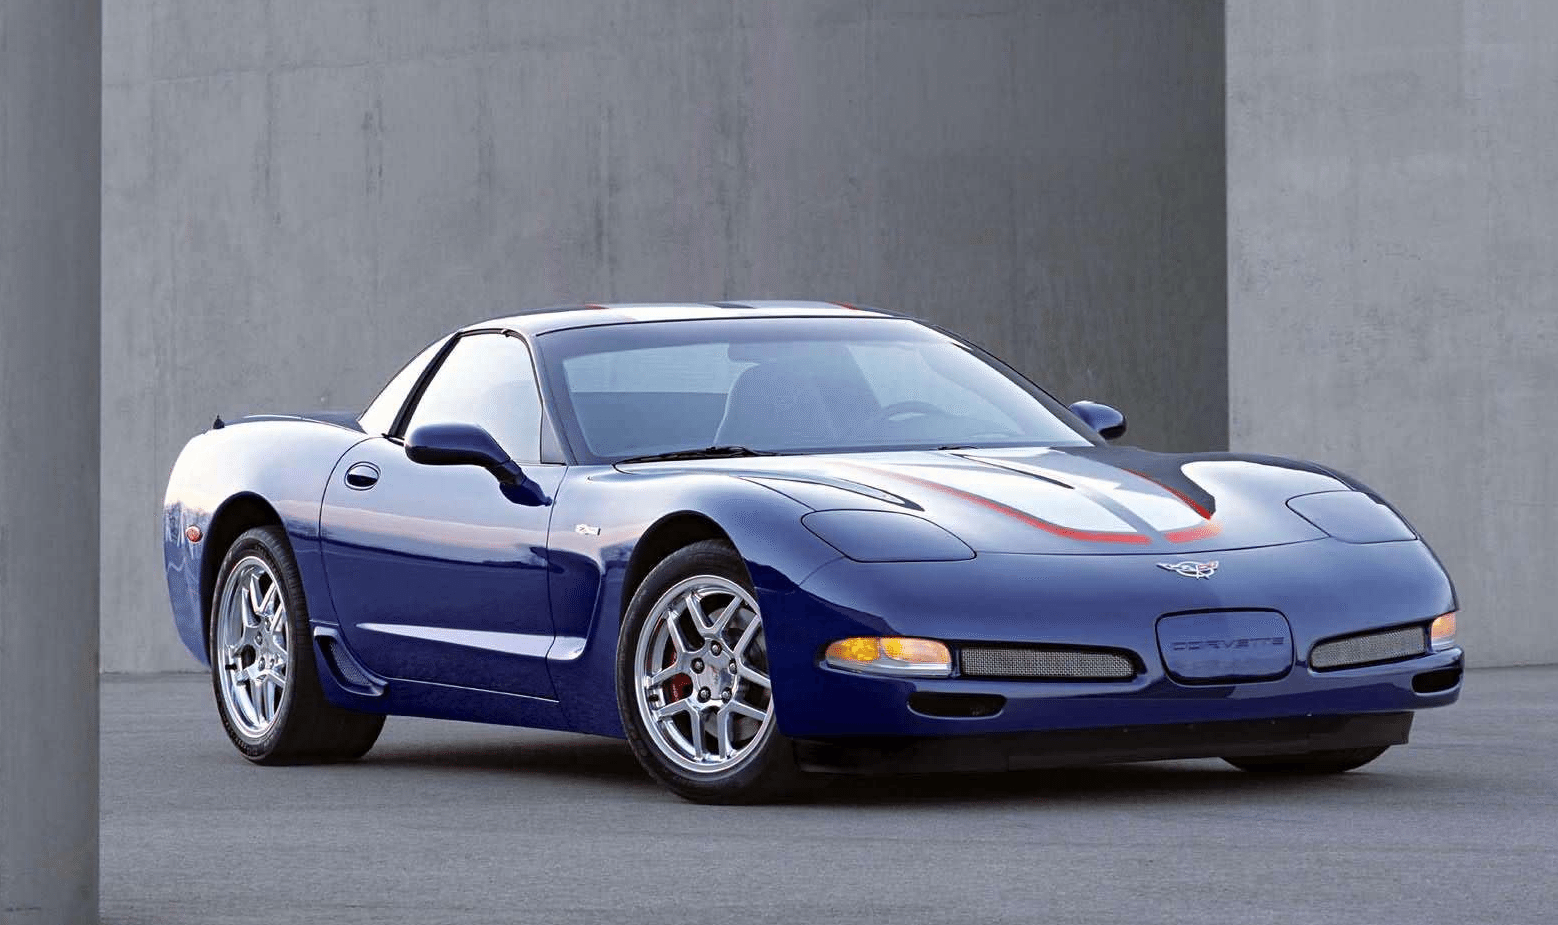 2004 C5 Corvette | Ultimate Guide (Overview, Specs, VIN Info